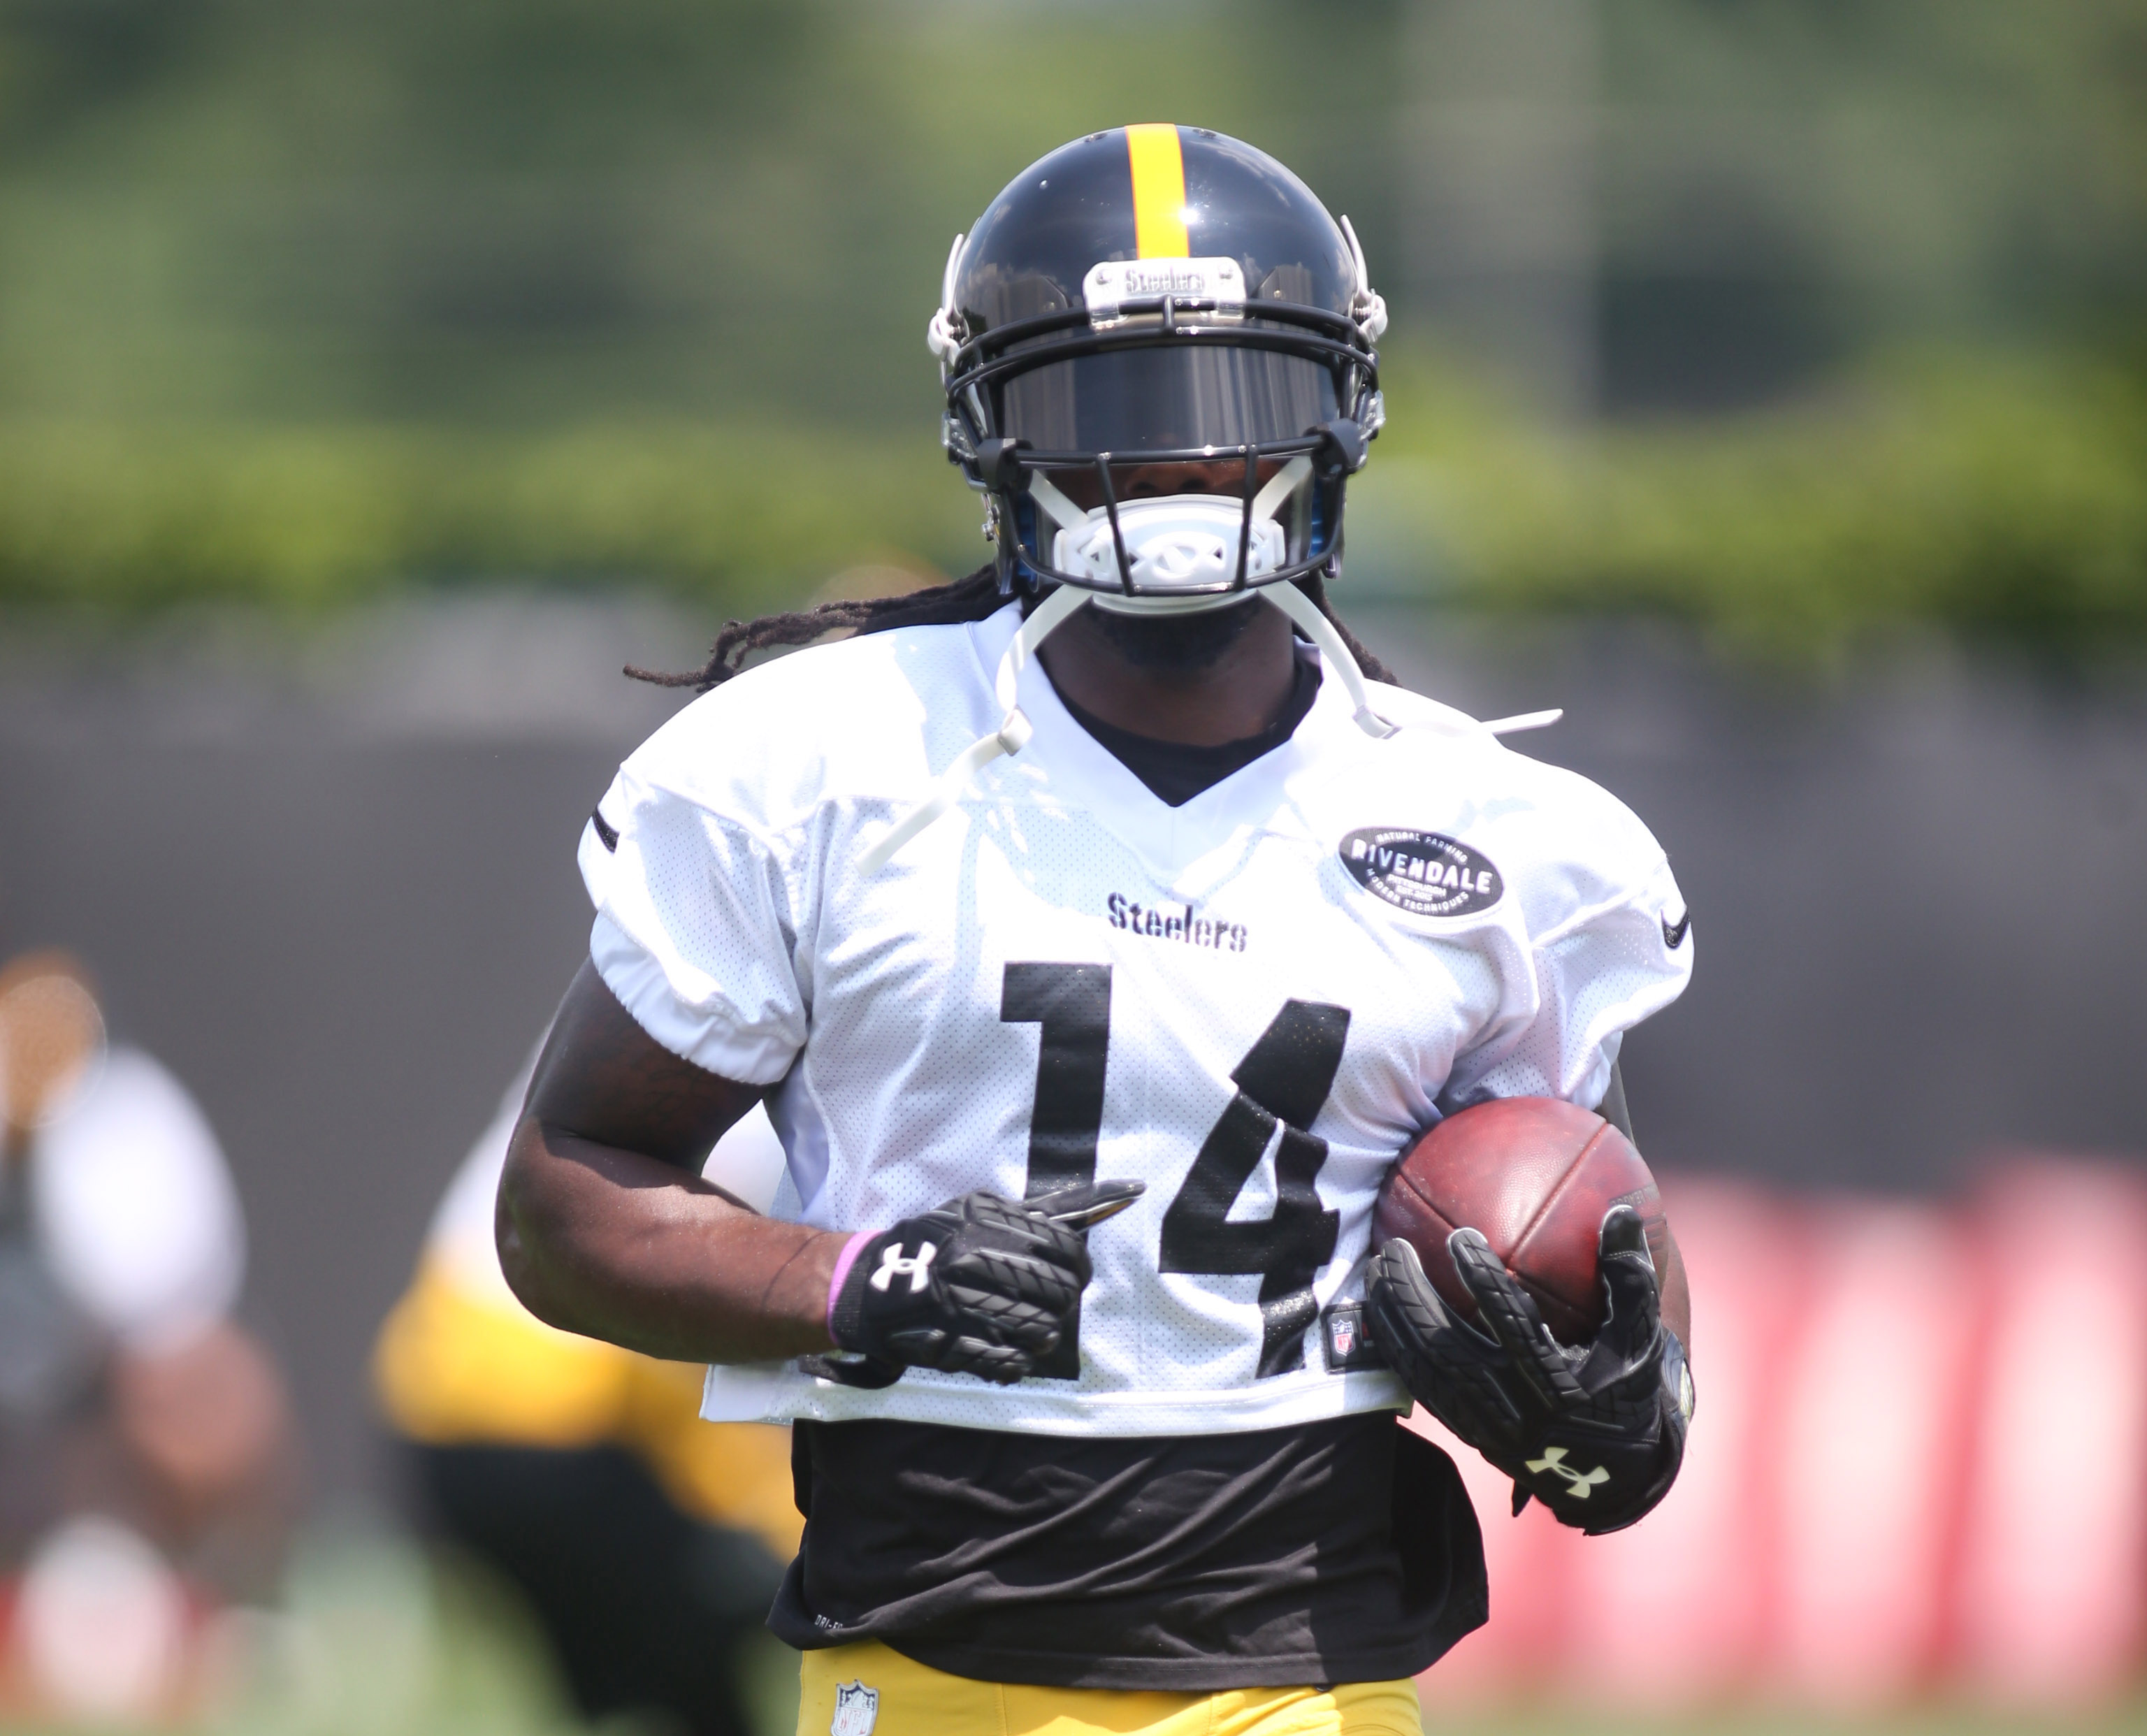 10107176-nfl-pittsburgh-steelers-minicamp